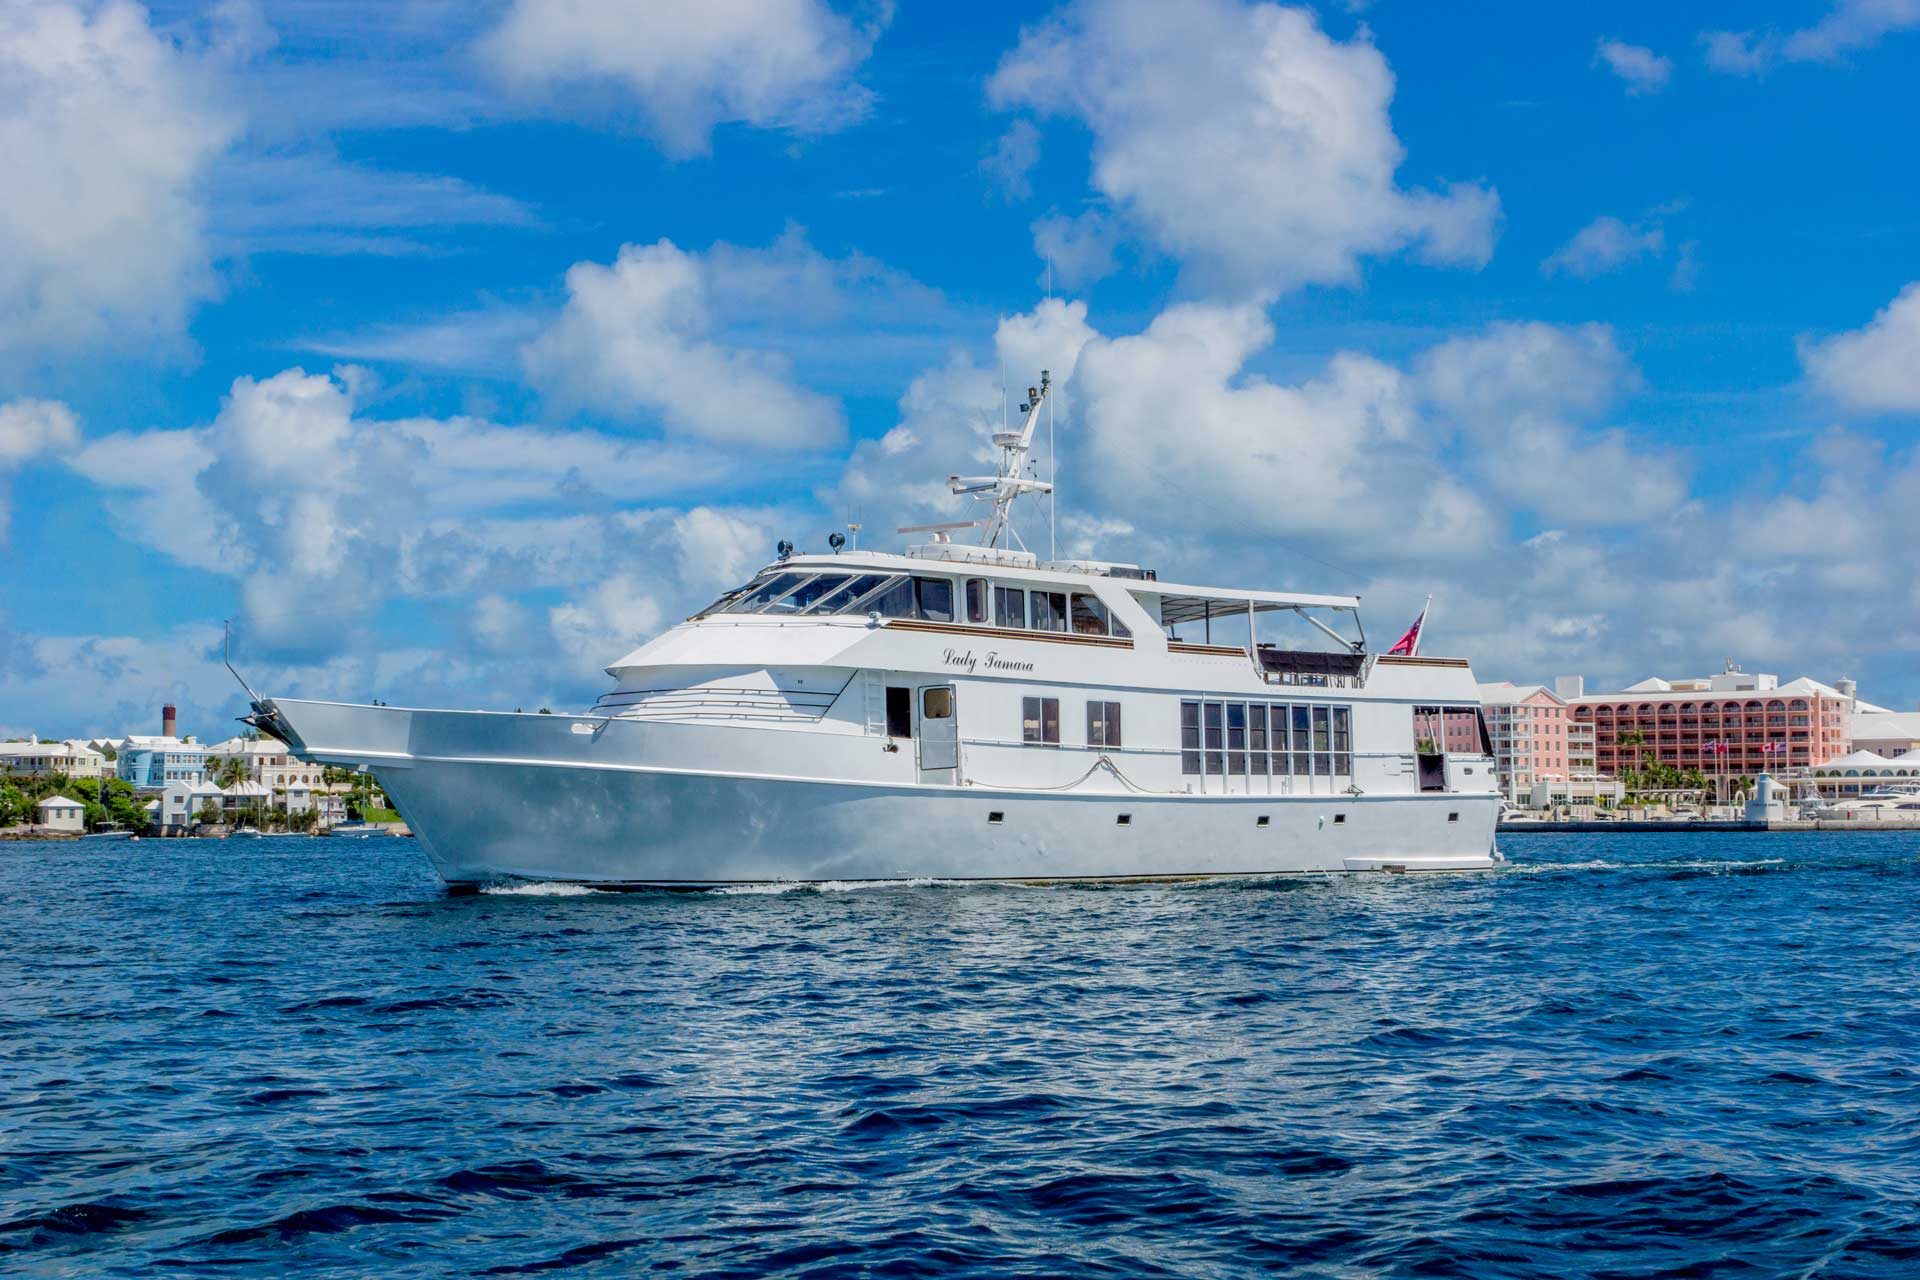 Lady Tamara cruising in Hamilton Harbour, Bermuda